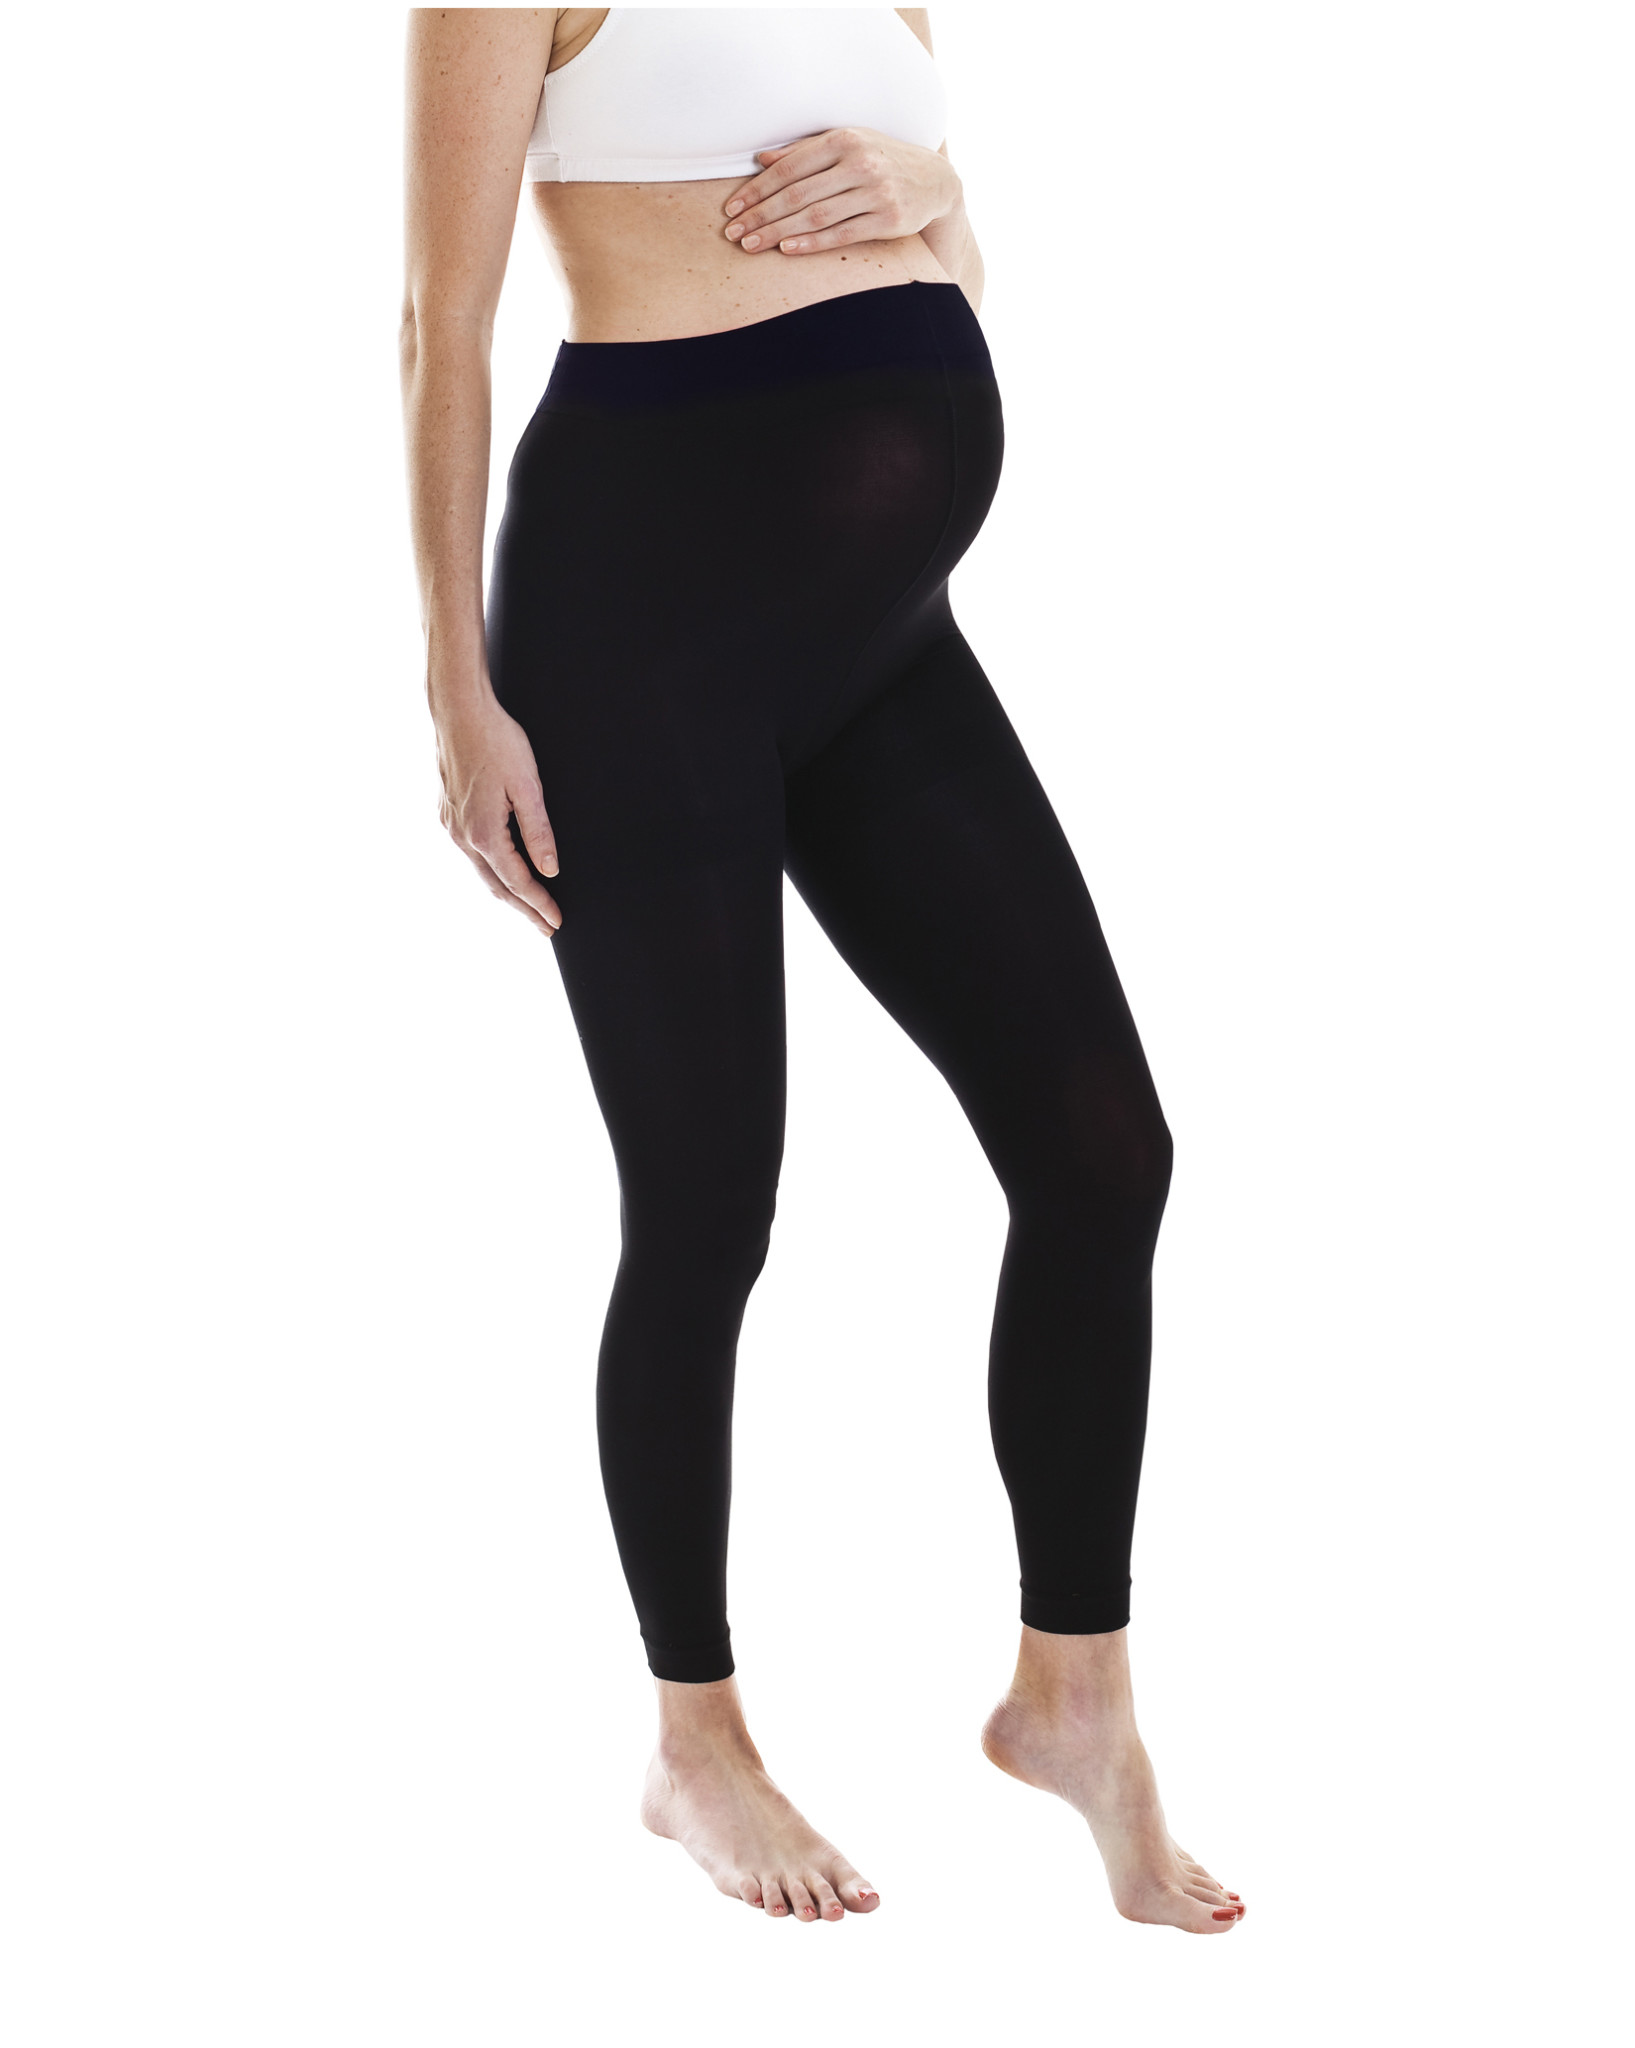 Fertile Mind Softtights Footless Maternity Tights